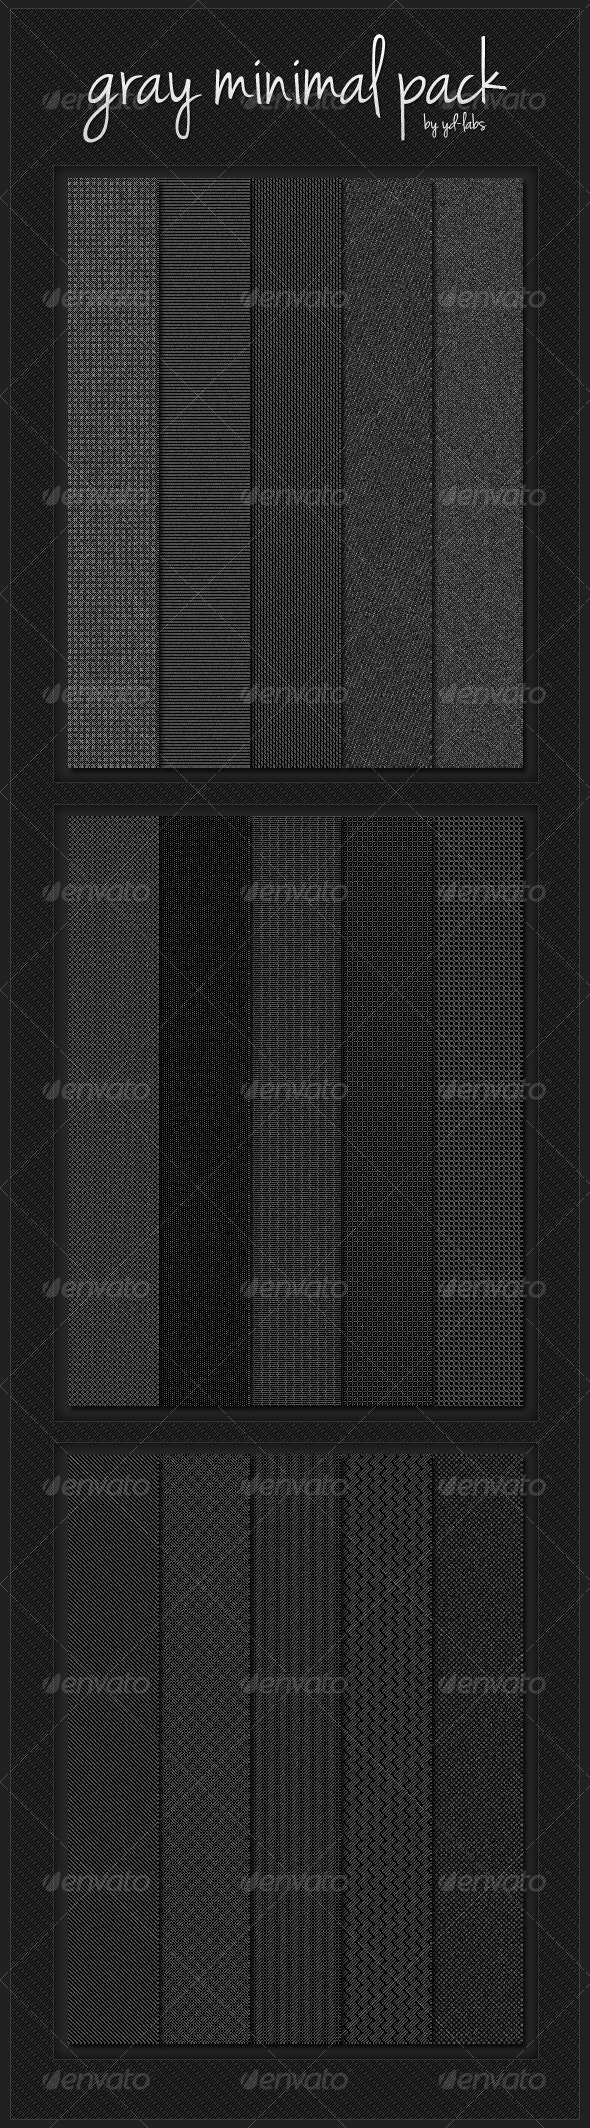 Gray Minimal Pack - Patterns Backgrounds